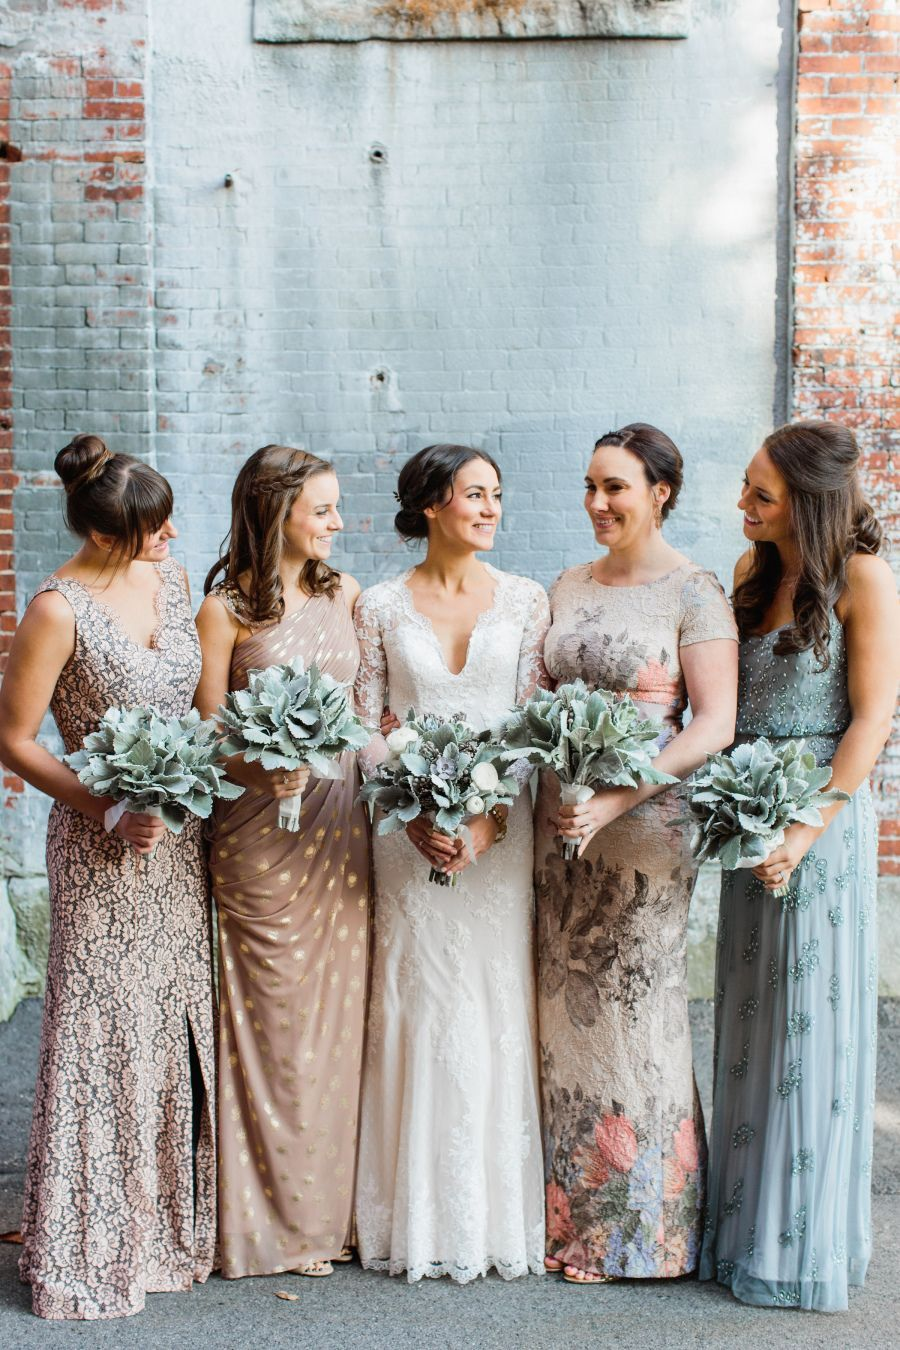 Pattern Bridesmaid Dress Will Inspire You To Find The Lovely Outfit ...